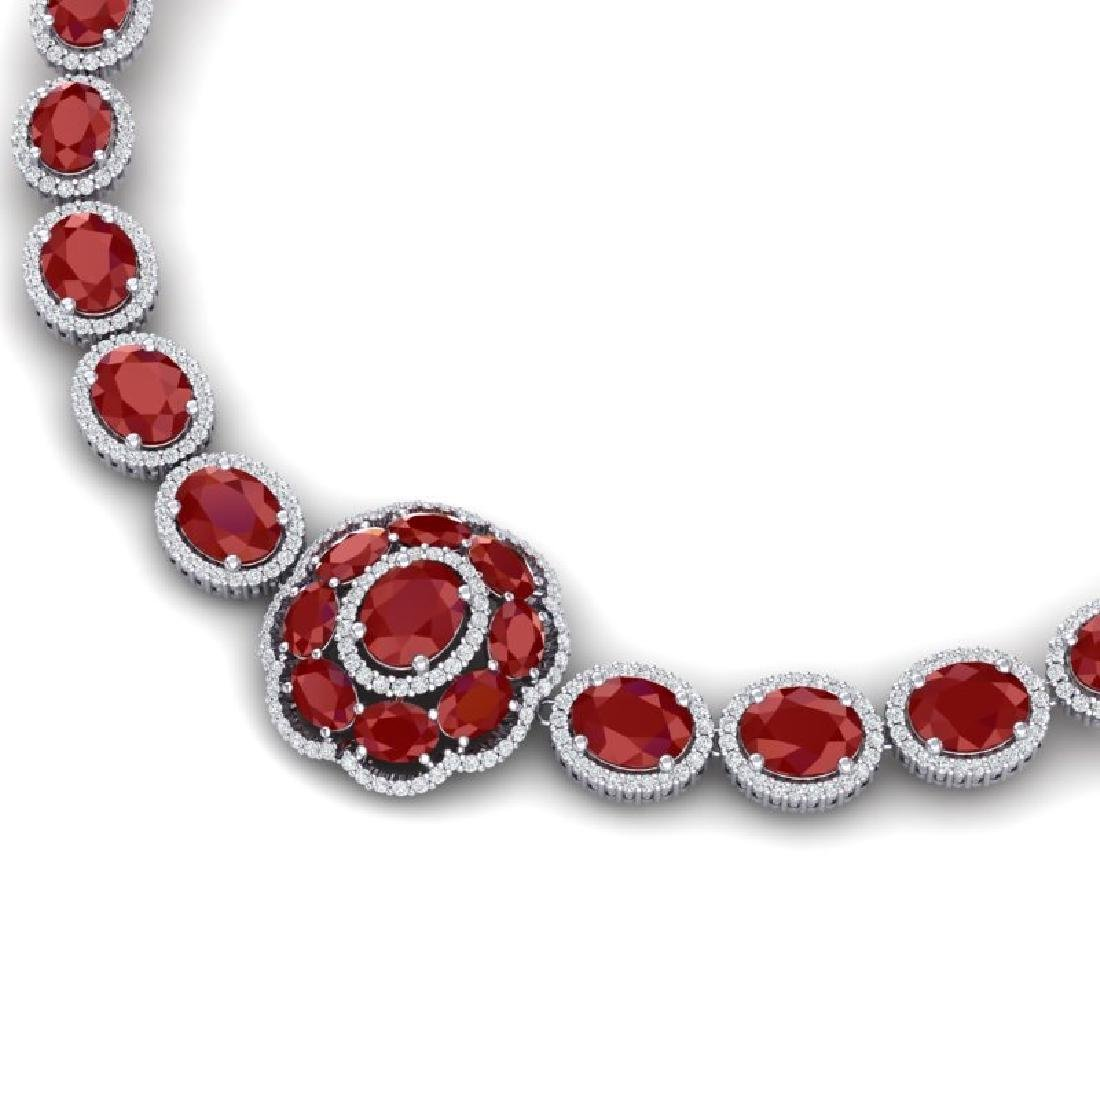 58.33 CTW Royalty Ruby & VS Diamond Necklace 18K White